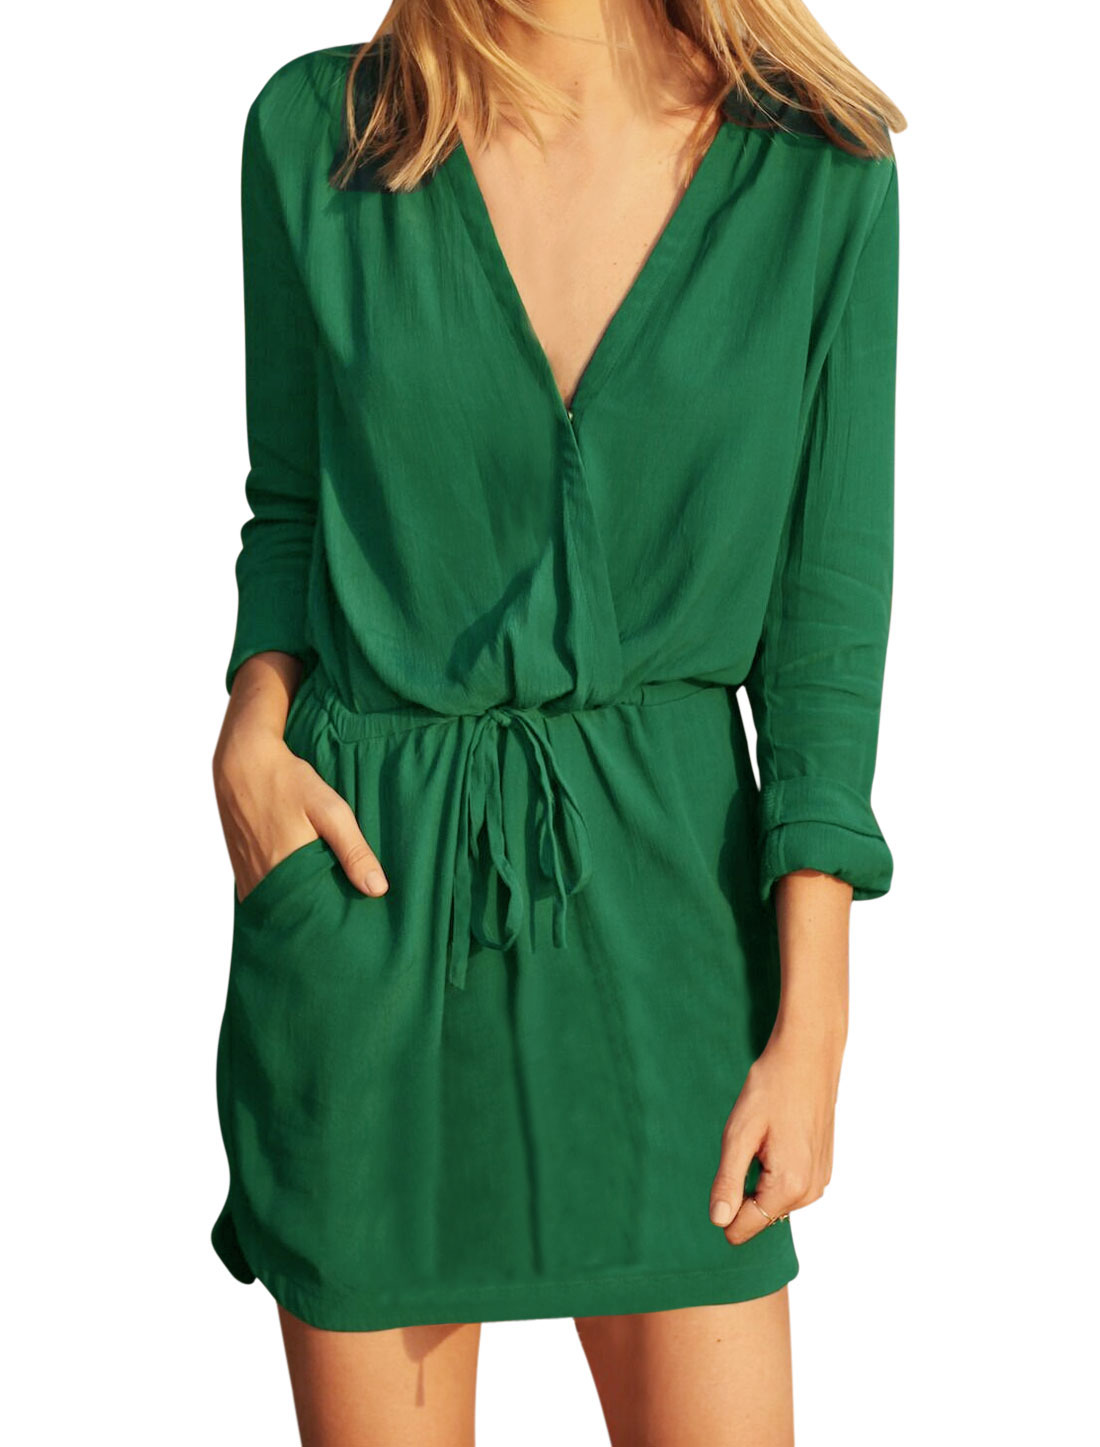 Ladies Crossover V Neck Drawstring Waist Tunic Dress Green S